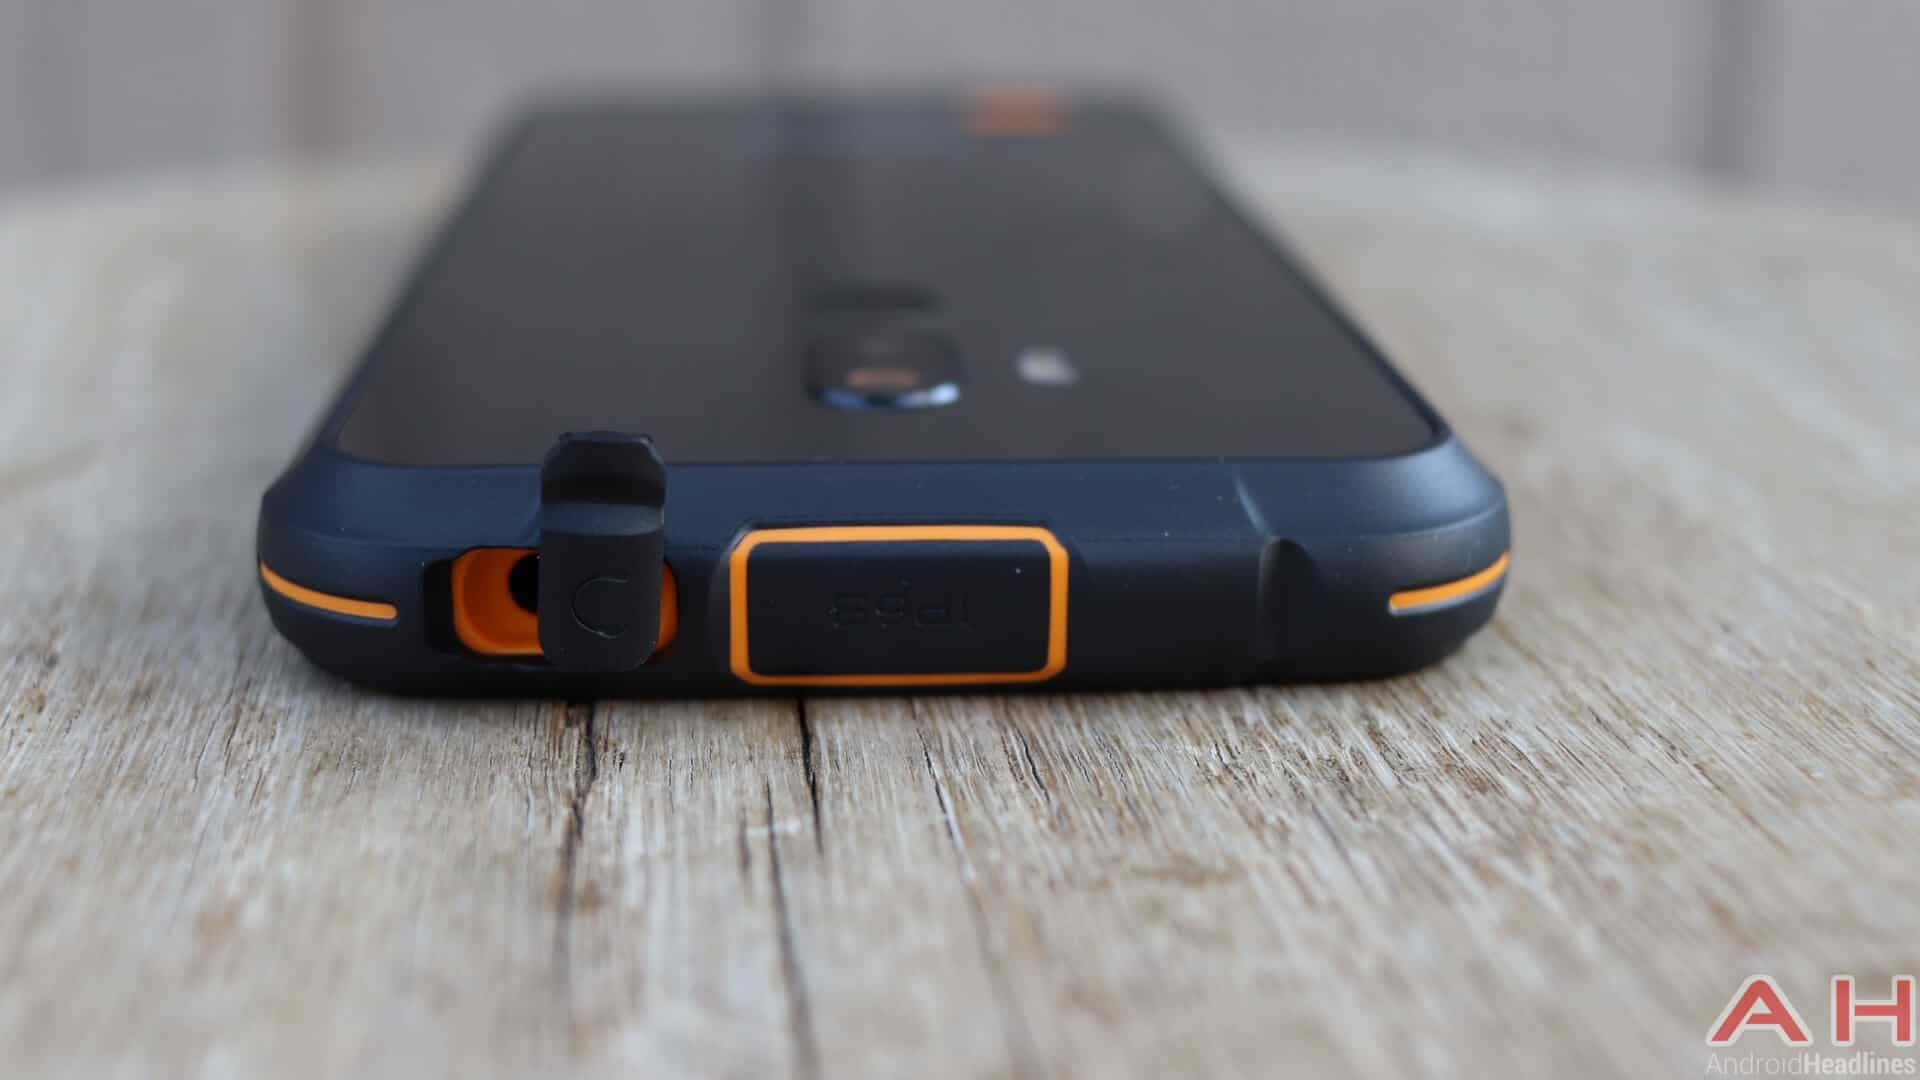 Ulefone Armor 5 Review Hardware Gallery AH 09